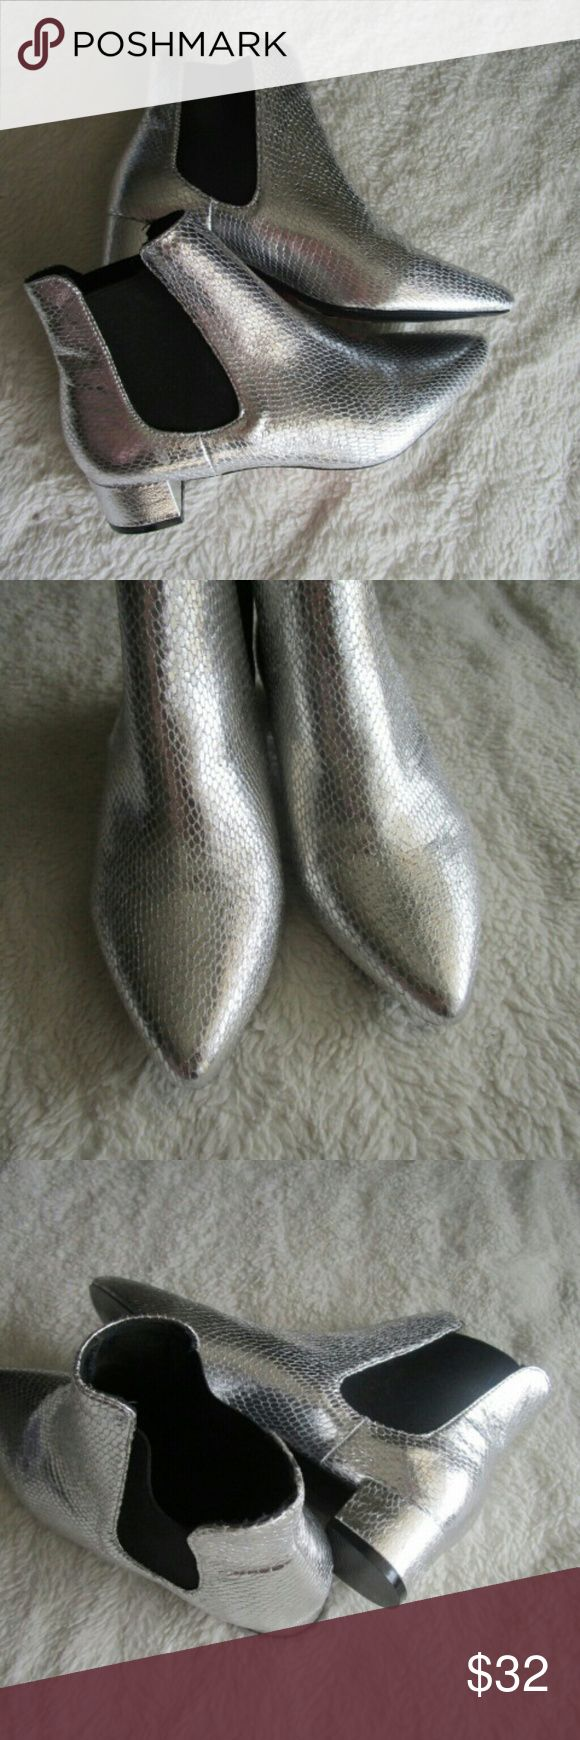 "SALE New TopShop Silver ChelseA Ankle Boots 6.5 These booties are TopShop Silver Chelsea KRAZY Pointed Ankle Booties   They a modest block heel that adds authentic flair to a classic Chelsea boot crafted with a trend-right pointy toe. So cute and they definitely stand out! They are silver with black elastic!  - 1 1/2"" heel  - 5 3/4"" shaft   -Textile upper/textile and synthetic lining/synthetic sole  Women's Size 6.5 / Euro 37   Brand new! Topshop Shoes Ankle Boots & Booties"